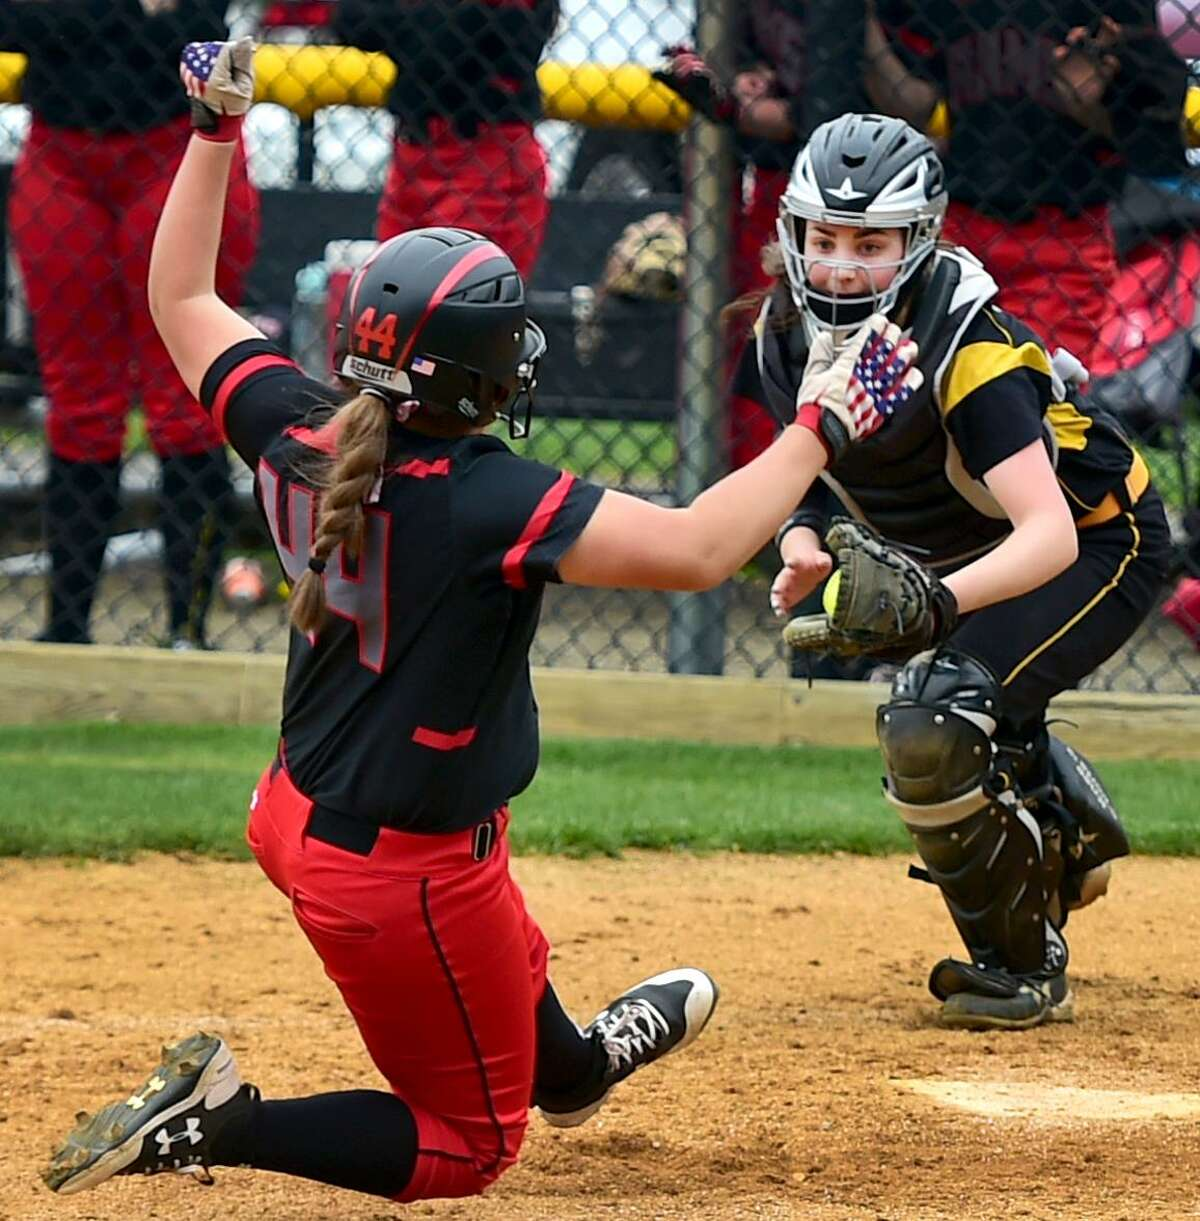 Catcher Rachel Crow, right, and the Amity softball team have won seven of their last eight games.